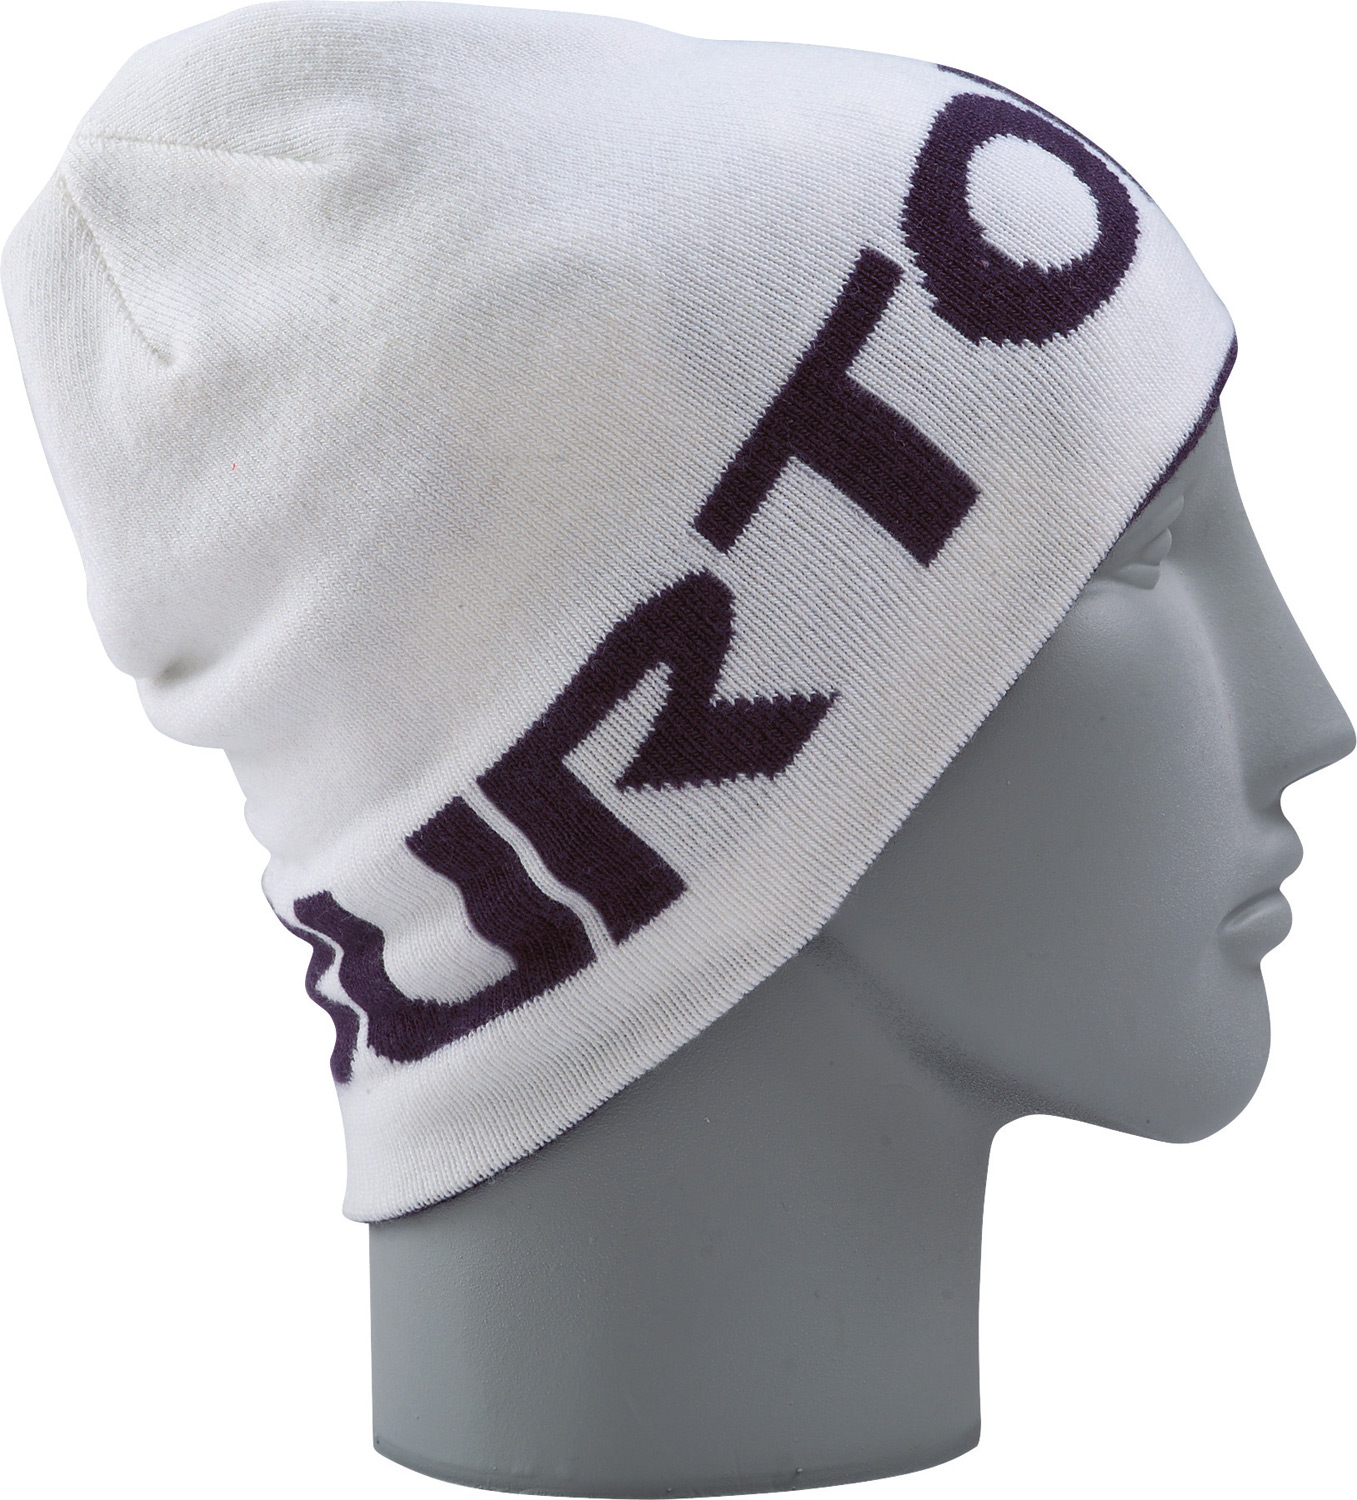 Snowboard Key Features of the Burton Billboard Beanie: Skully Fit One Size Fits All Reversible 100% Fine Knit Acrylic - $19.95